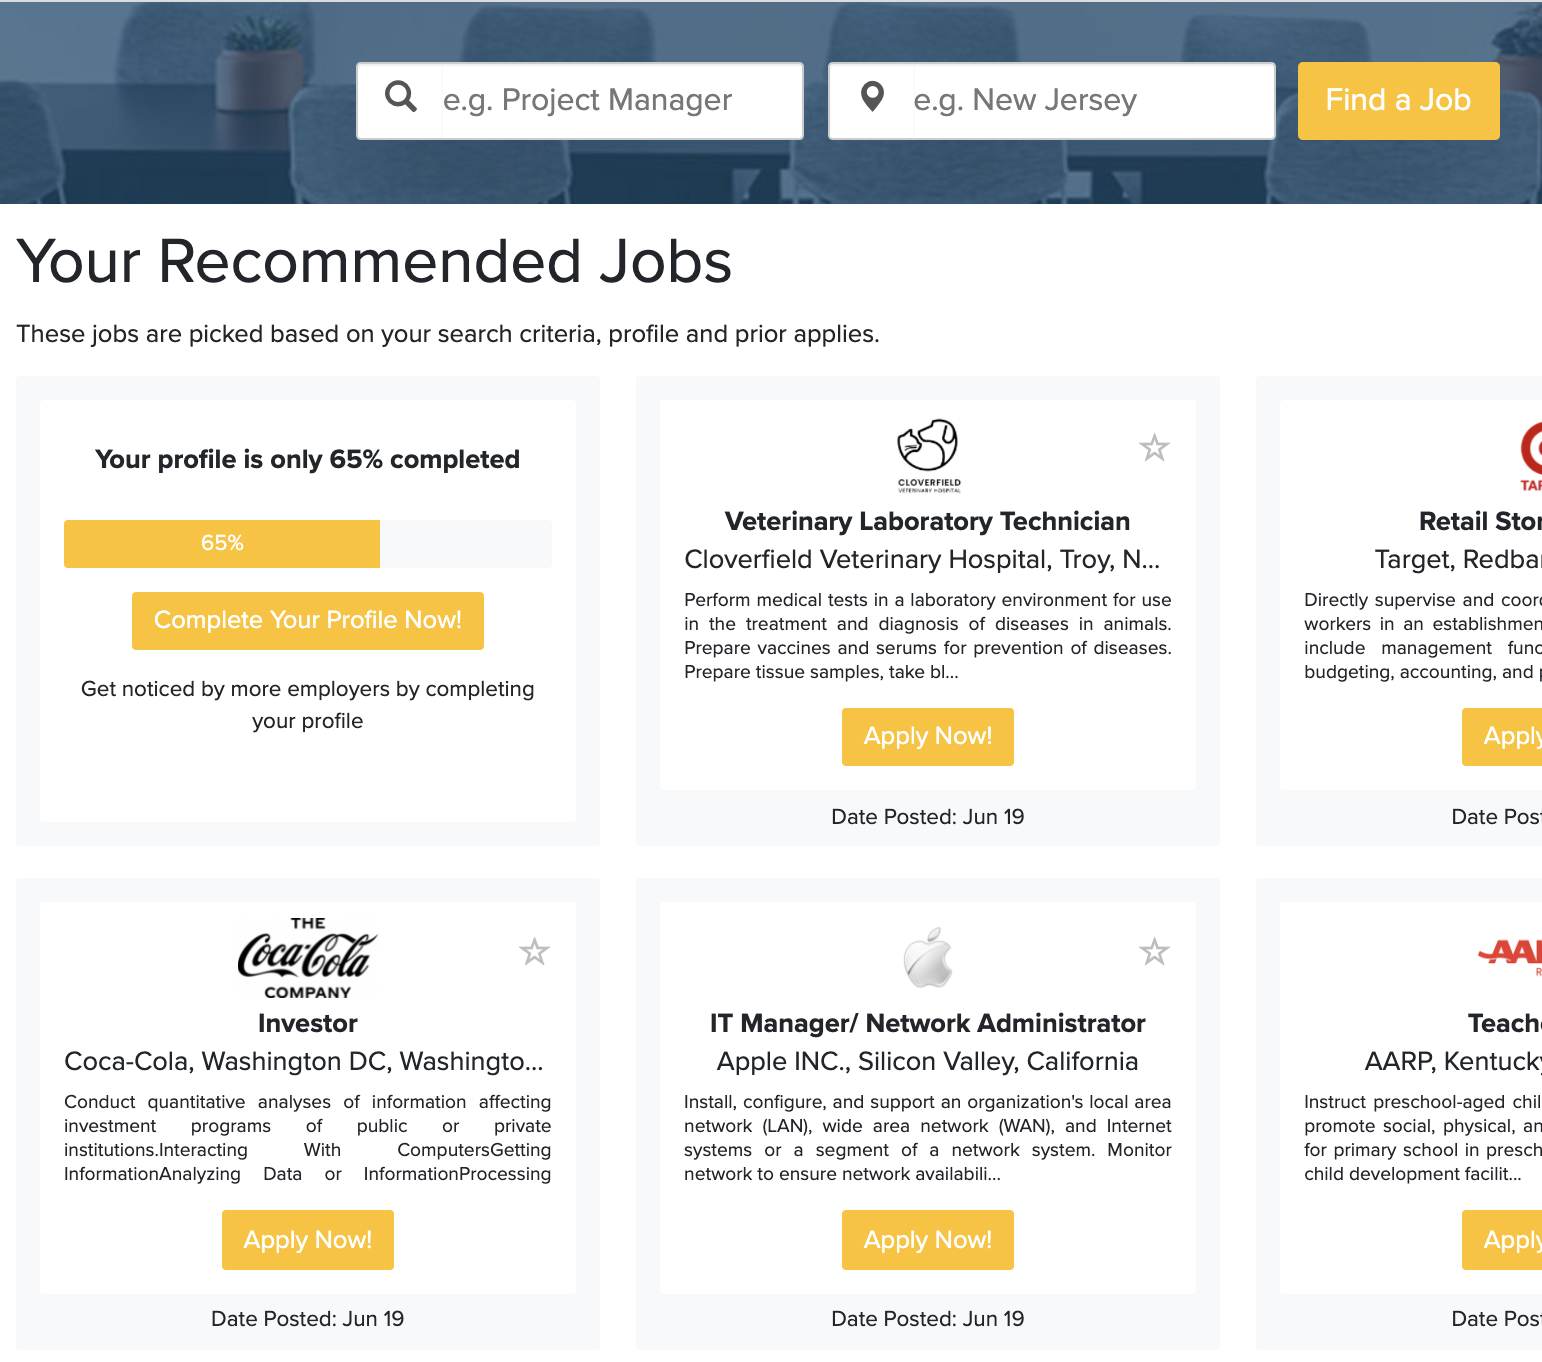 A screenshot of recommended jobs